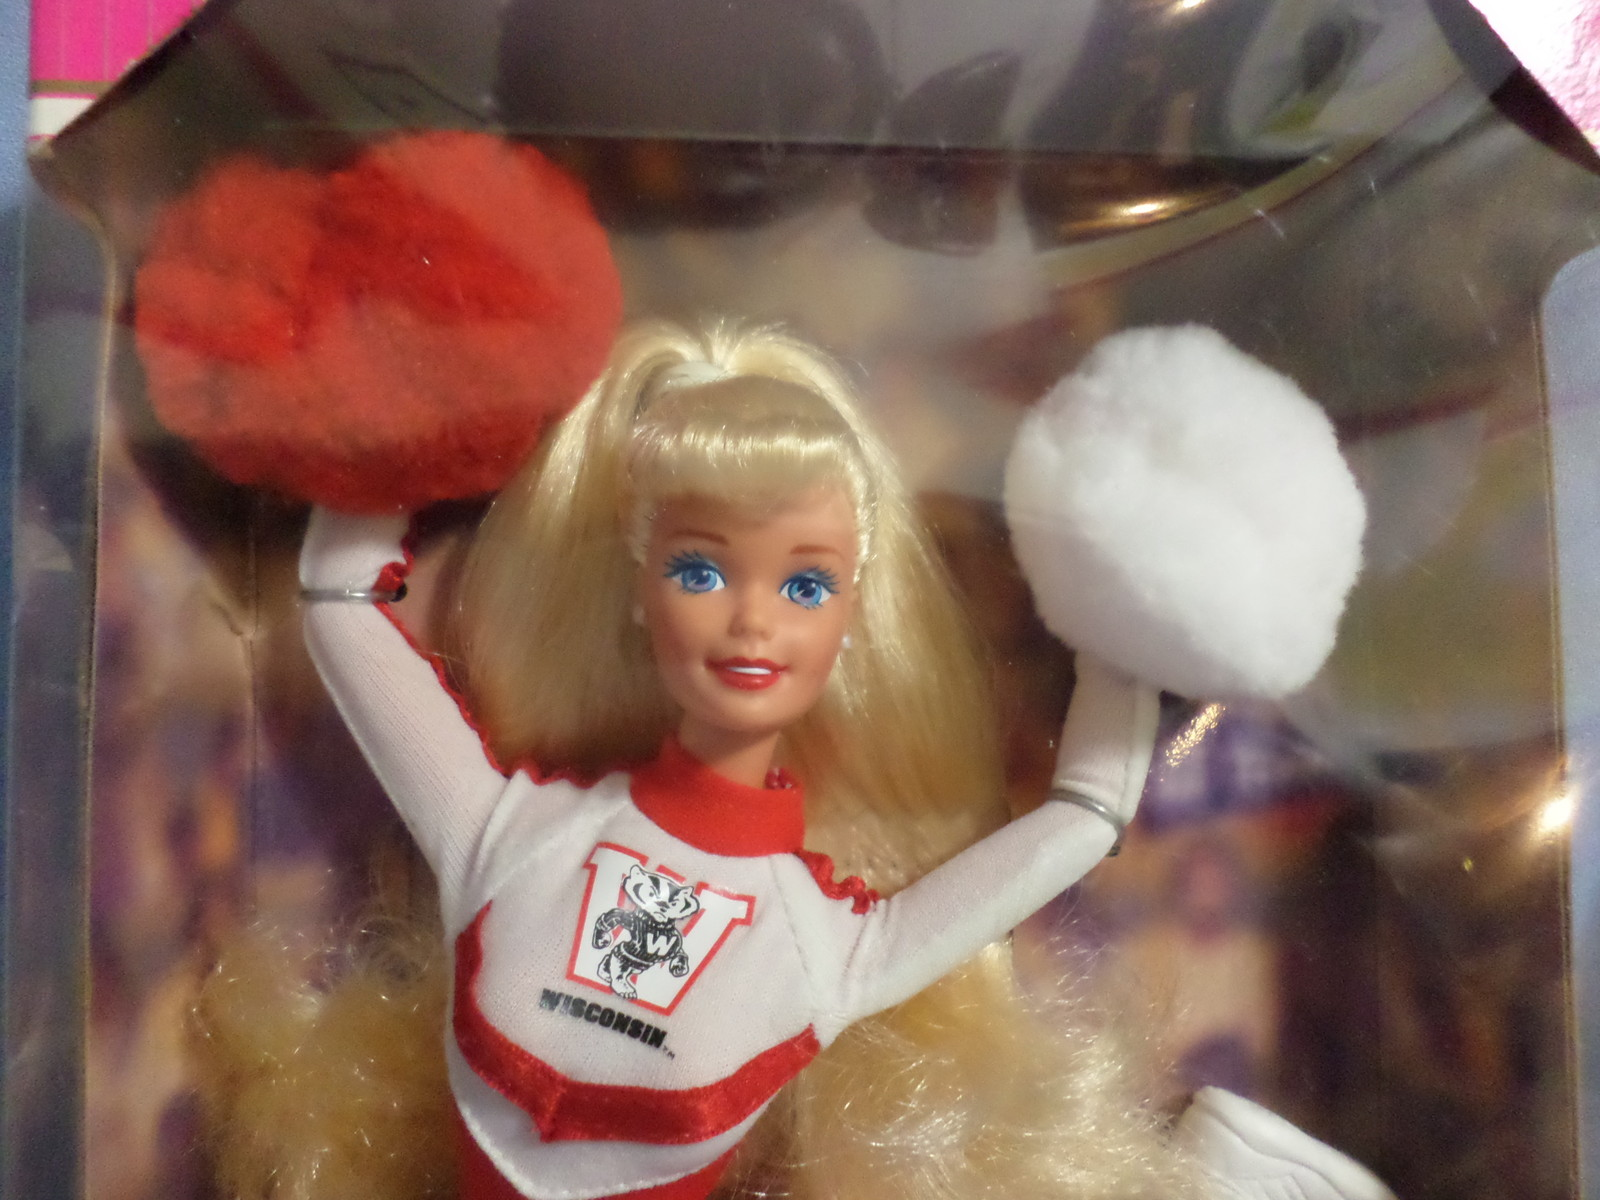 Mattel Barbie Doll University Wisconsin Cheerleader 1996 red white uniform H